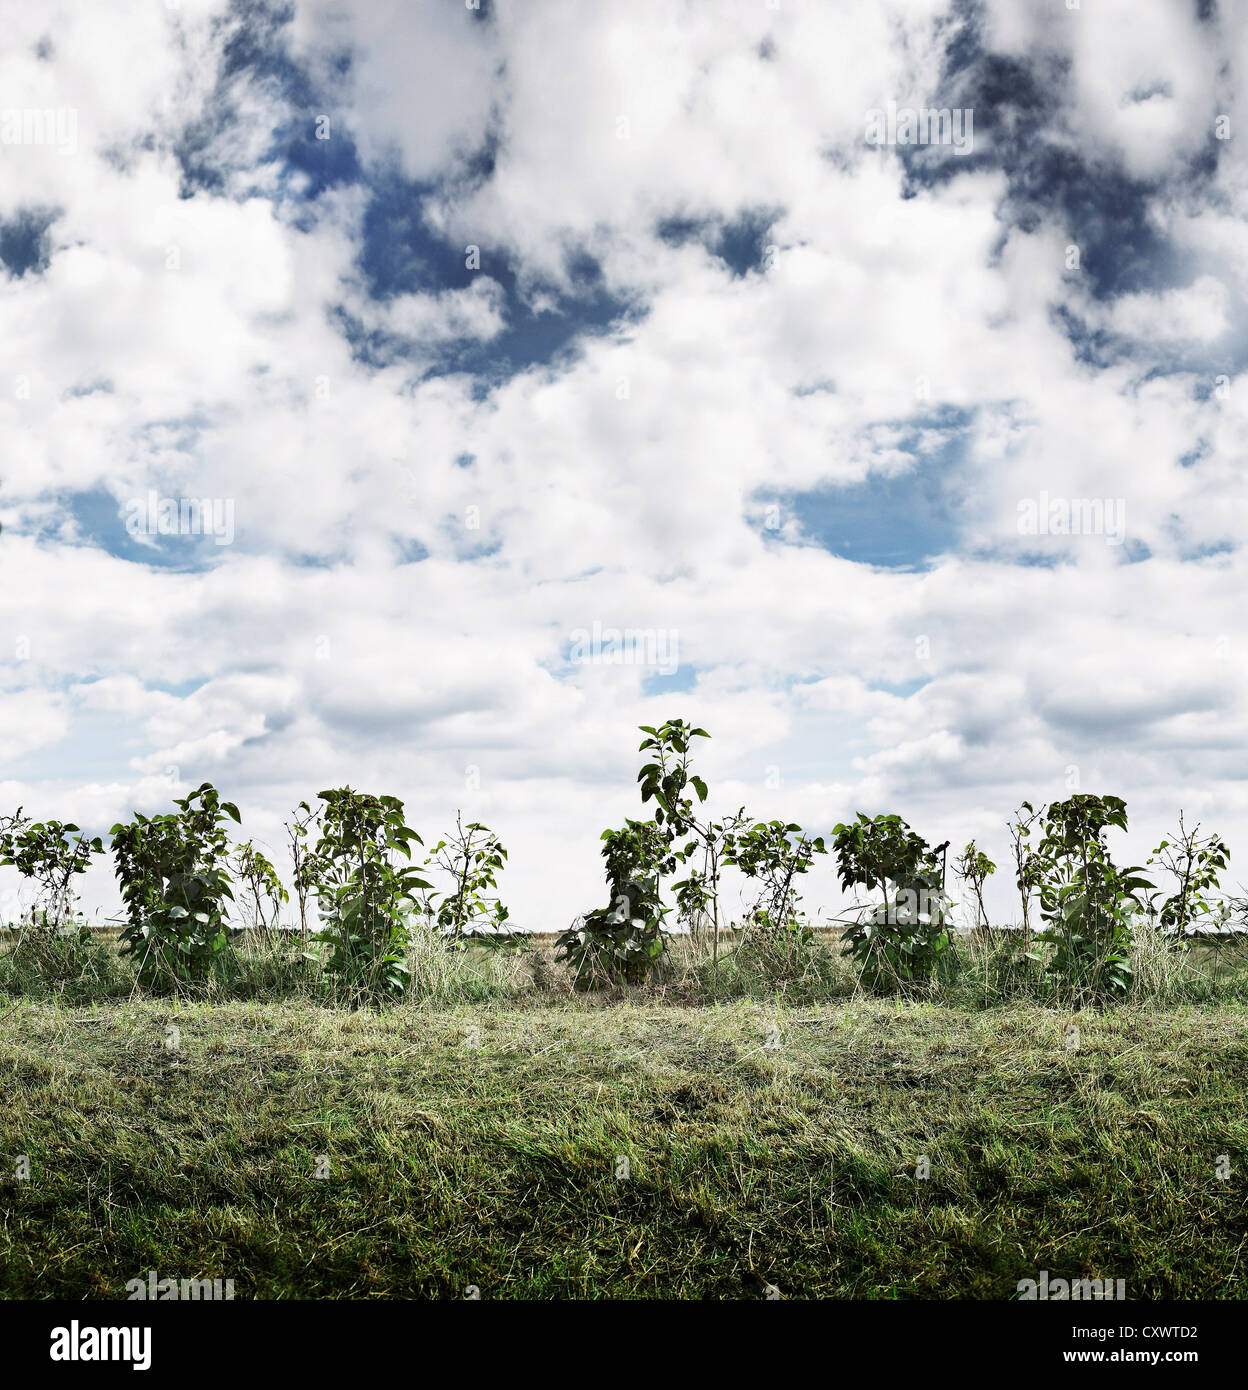 Shrubs growing in rural field Stock Photo